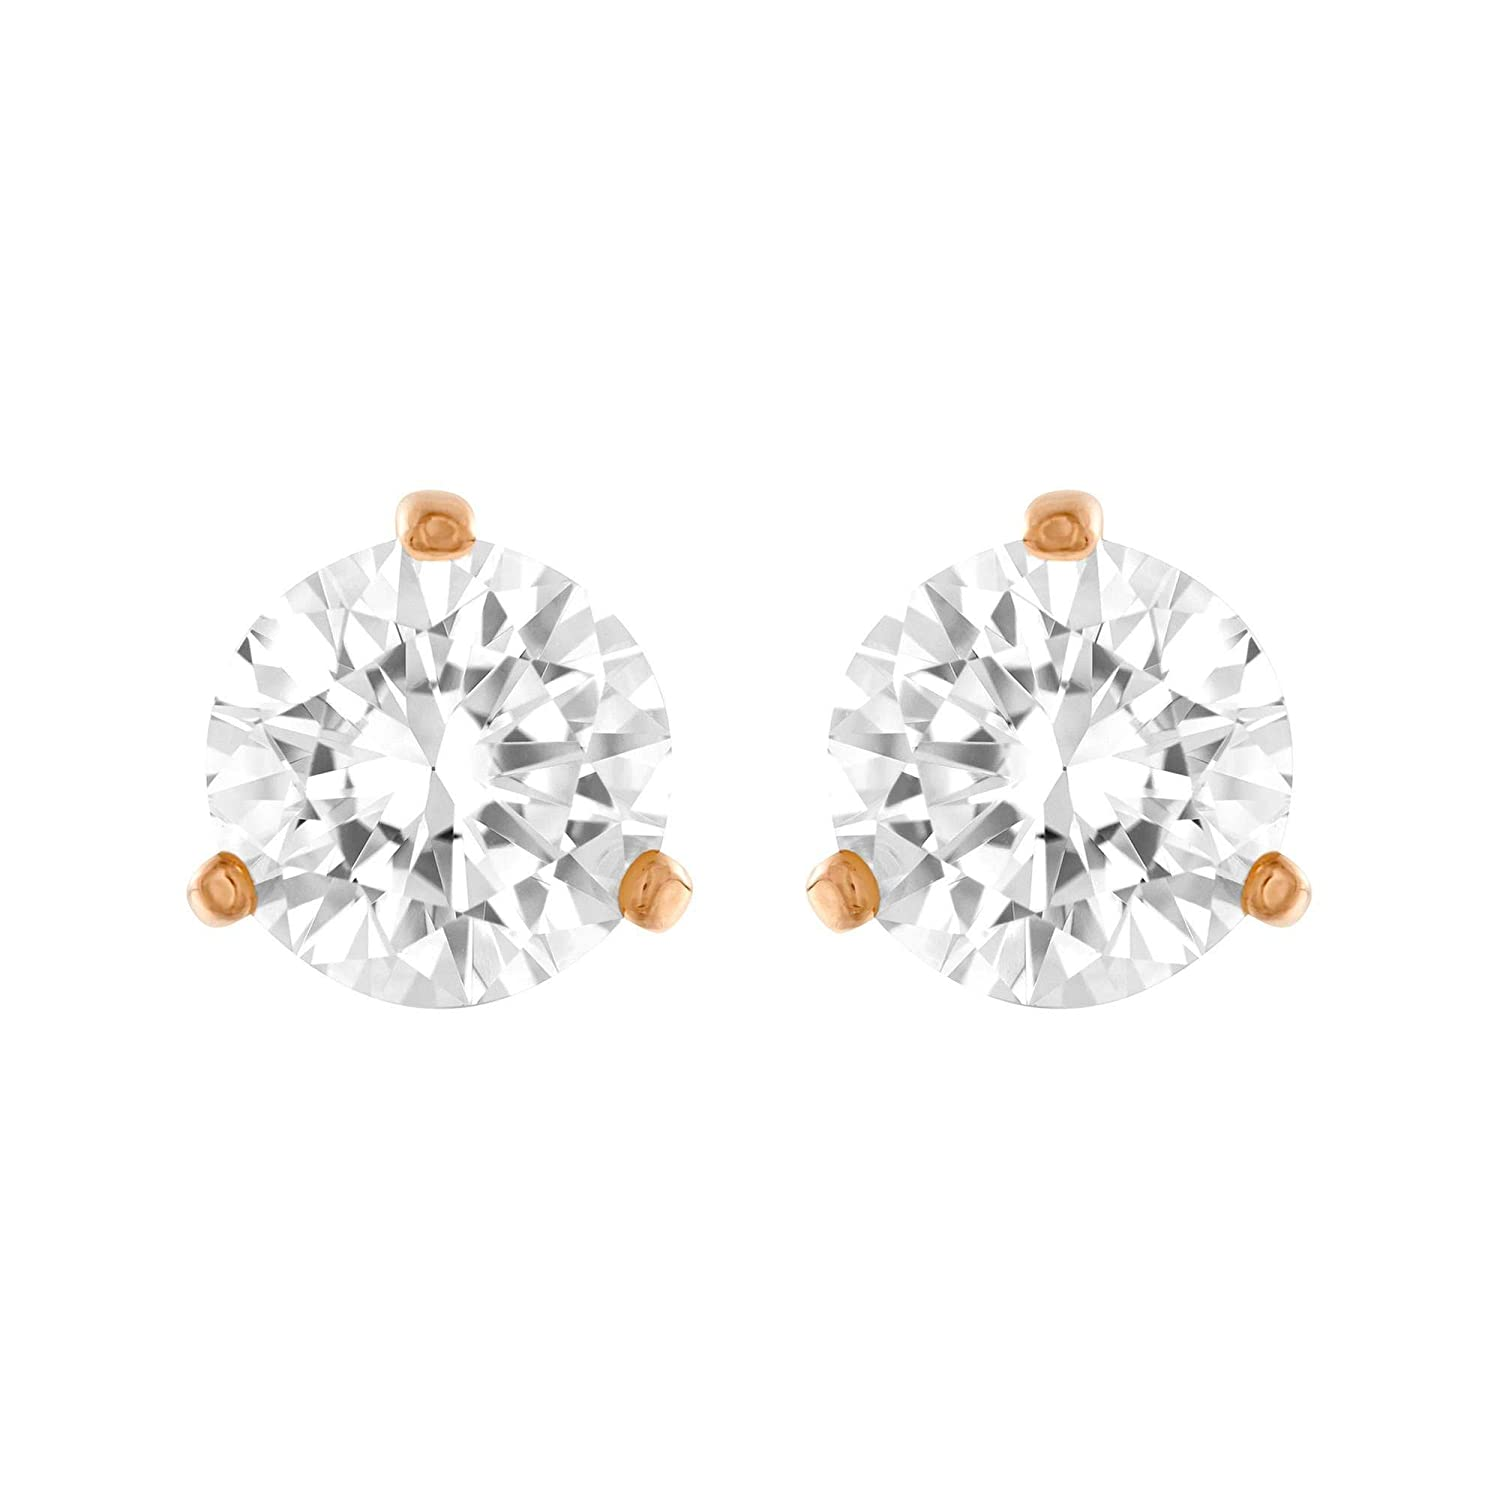 f13a526a0 Amazon.com: Swarovski Crystal Rose Gold-Plated White Solitaire Earrings:  Jewelry